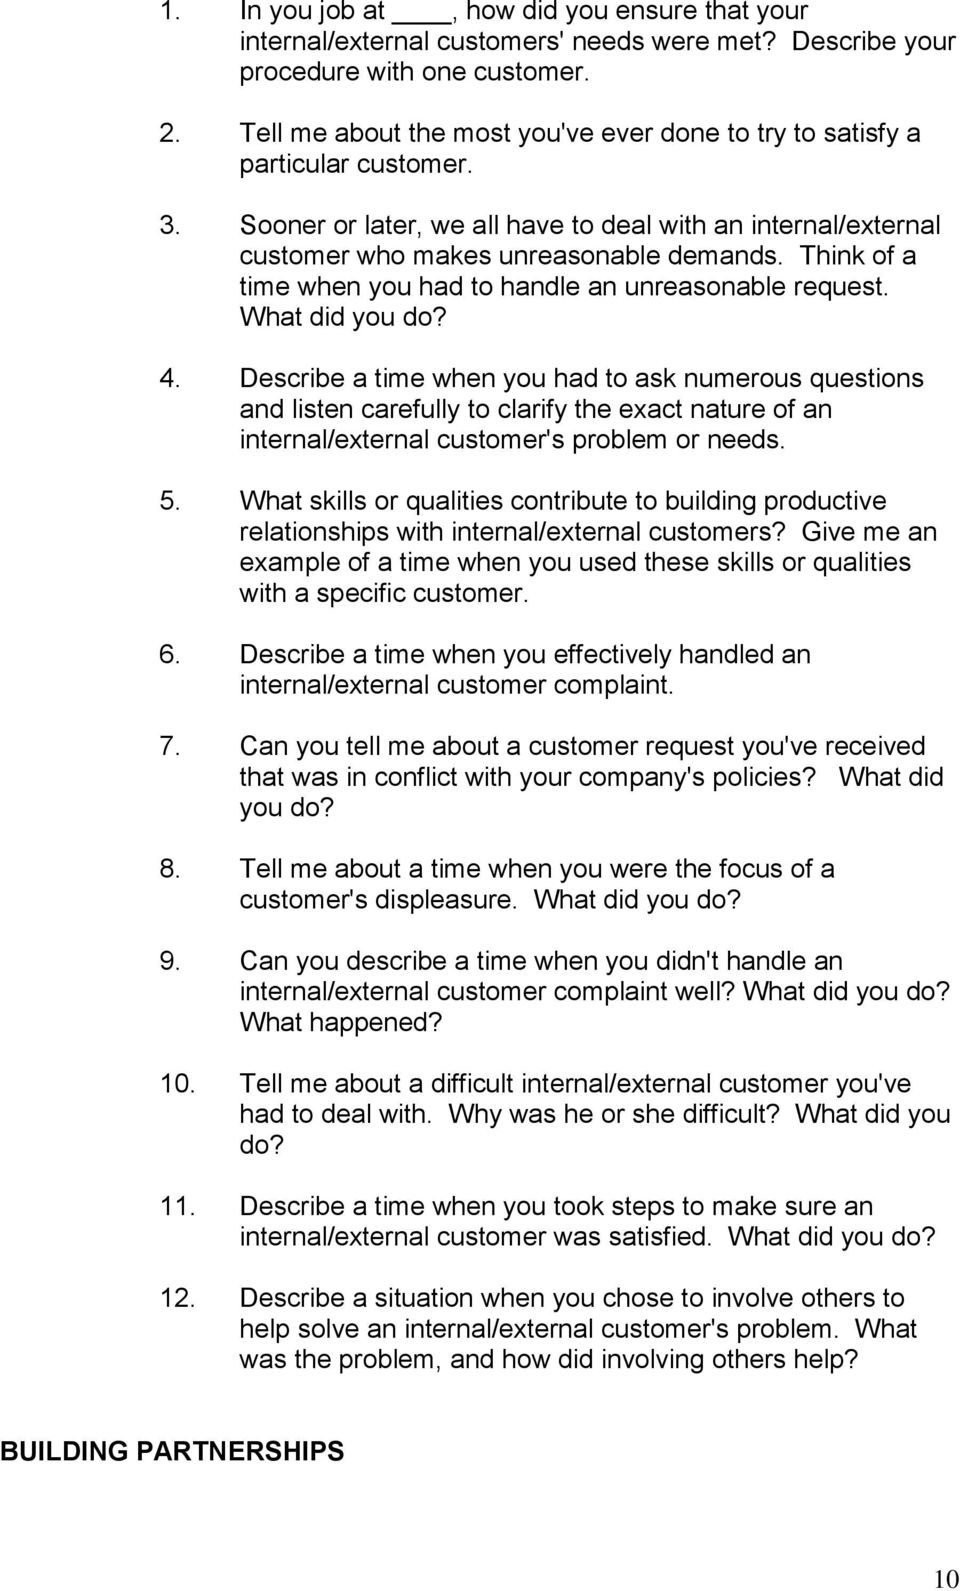 behavioral situational interview question bank table of contents think of a time when you had to handle an unreasonable request what did you